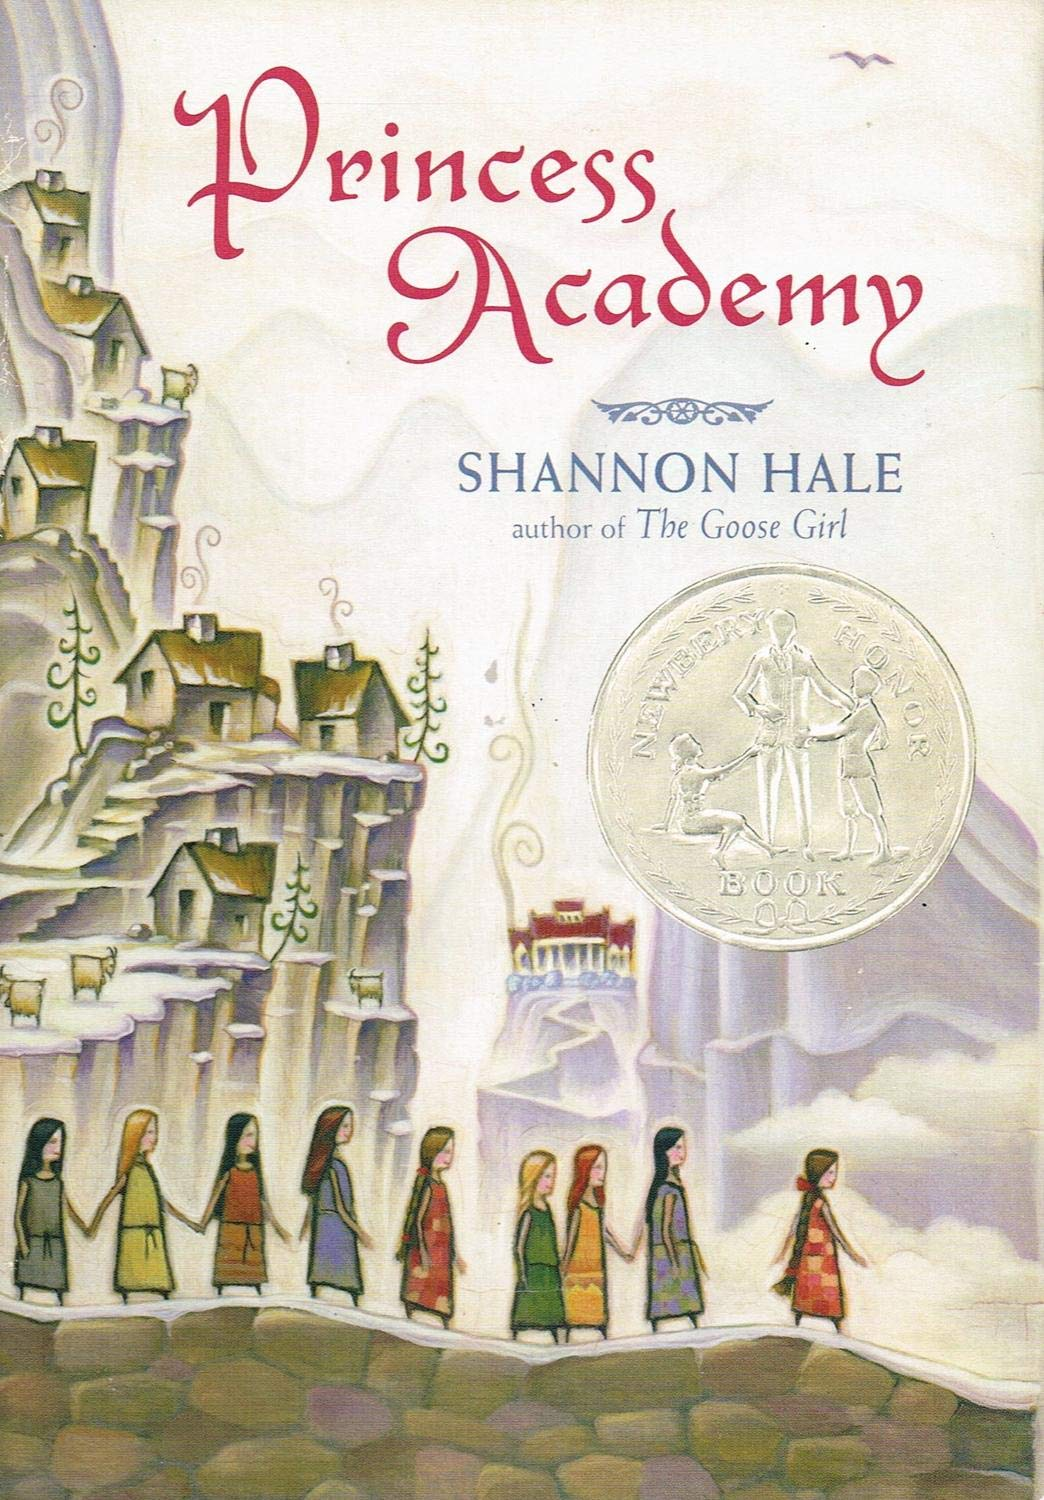 Princess Academy , by Shannon Hale